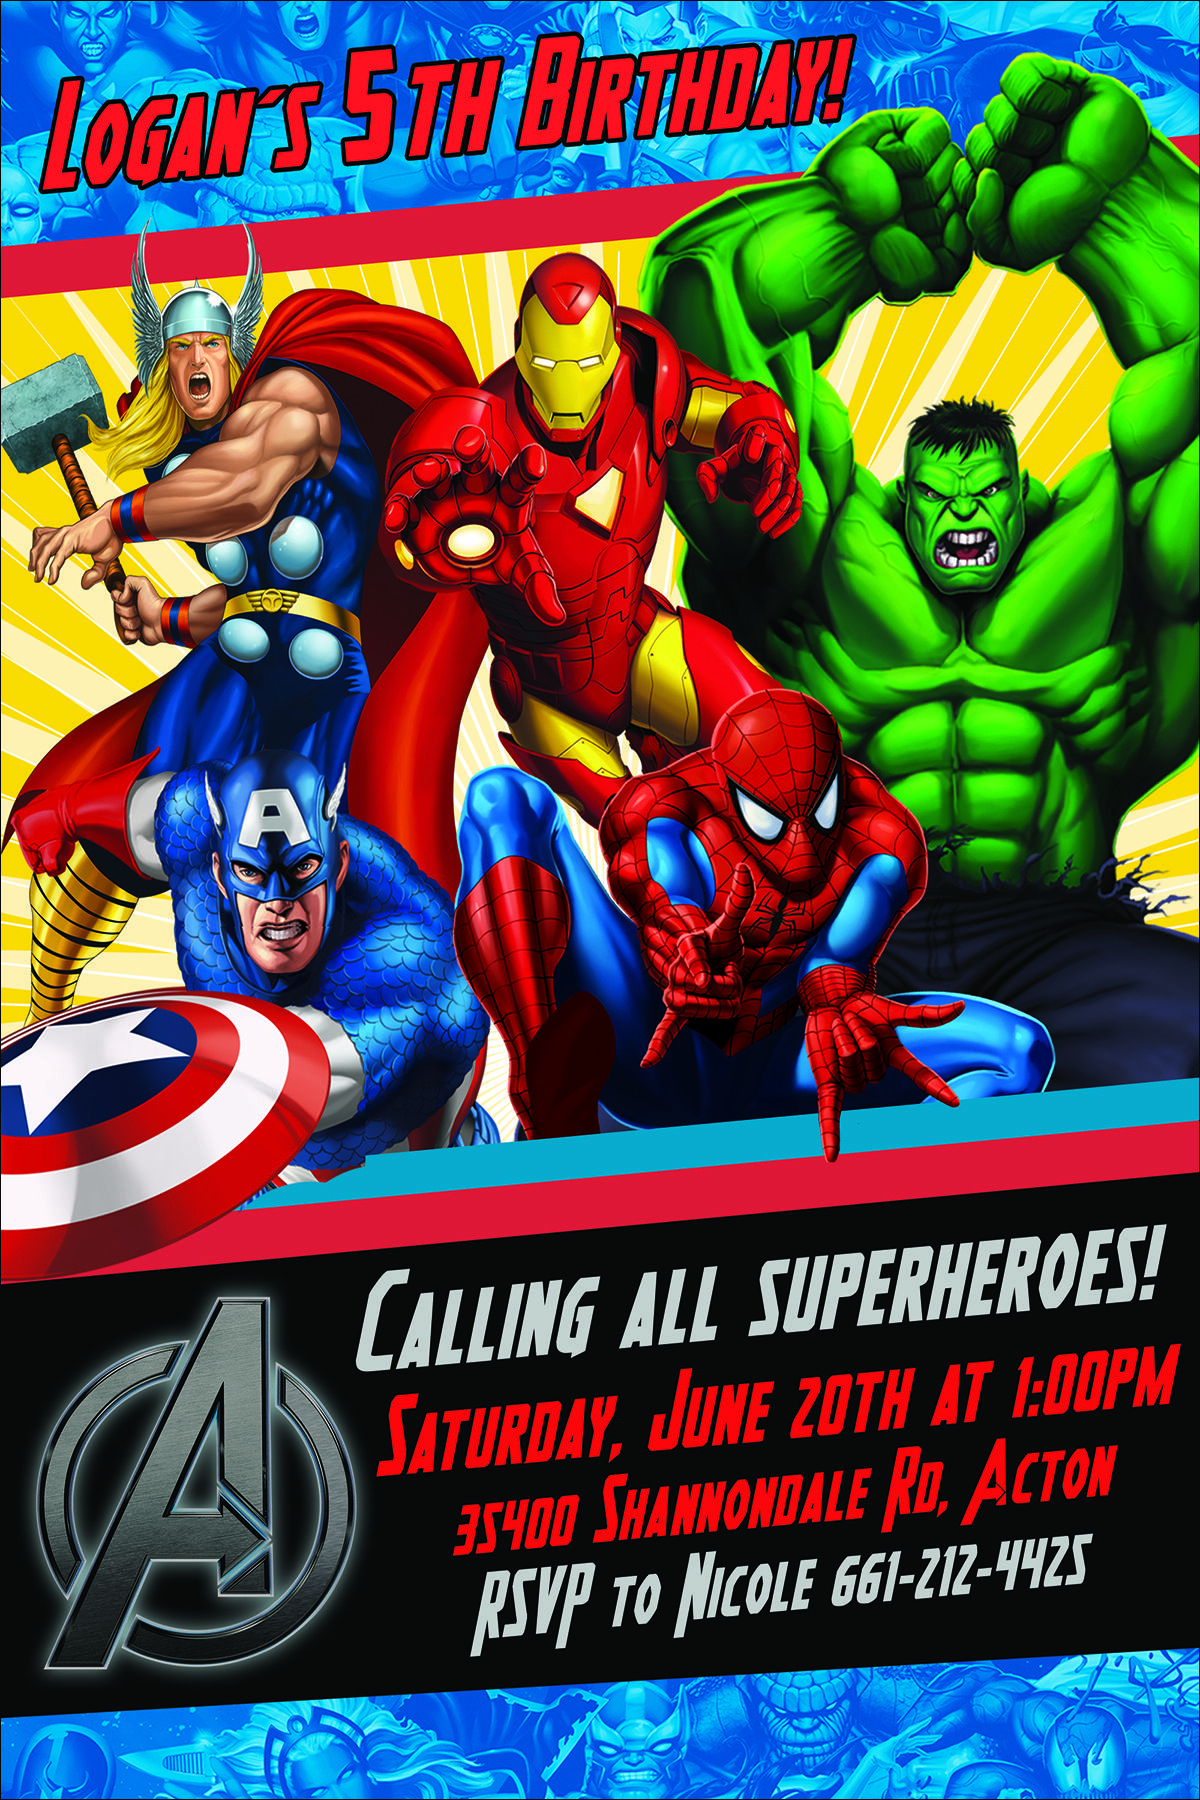 Avengers Birthday Invite Etsy Visit To Grab An Amazing